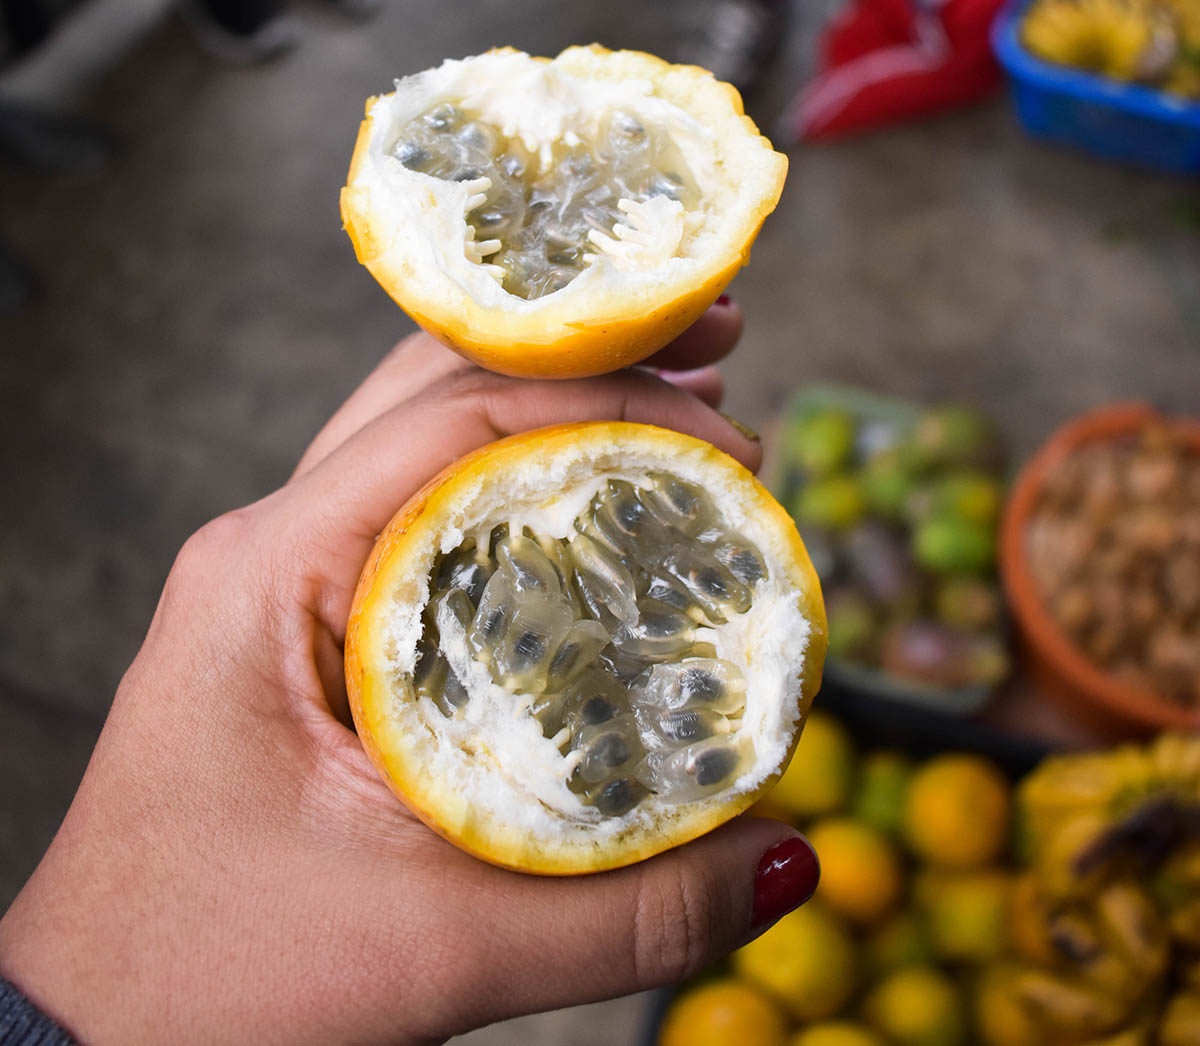 The inside of granadilla, a fruit similar to passionfruit found in Peru.